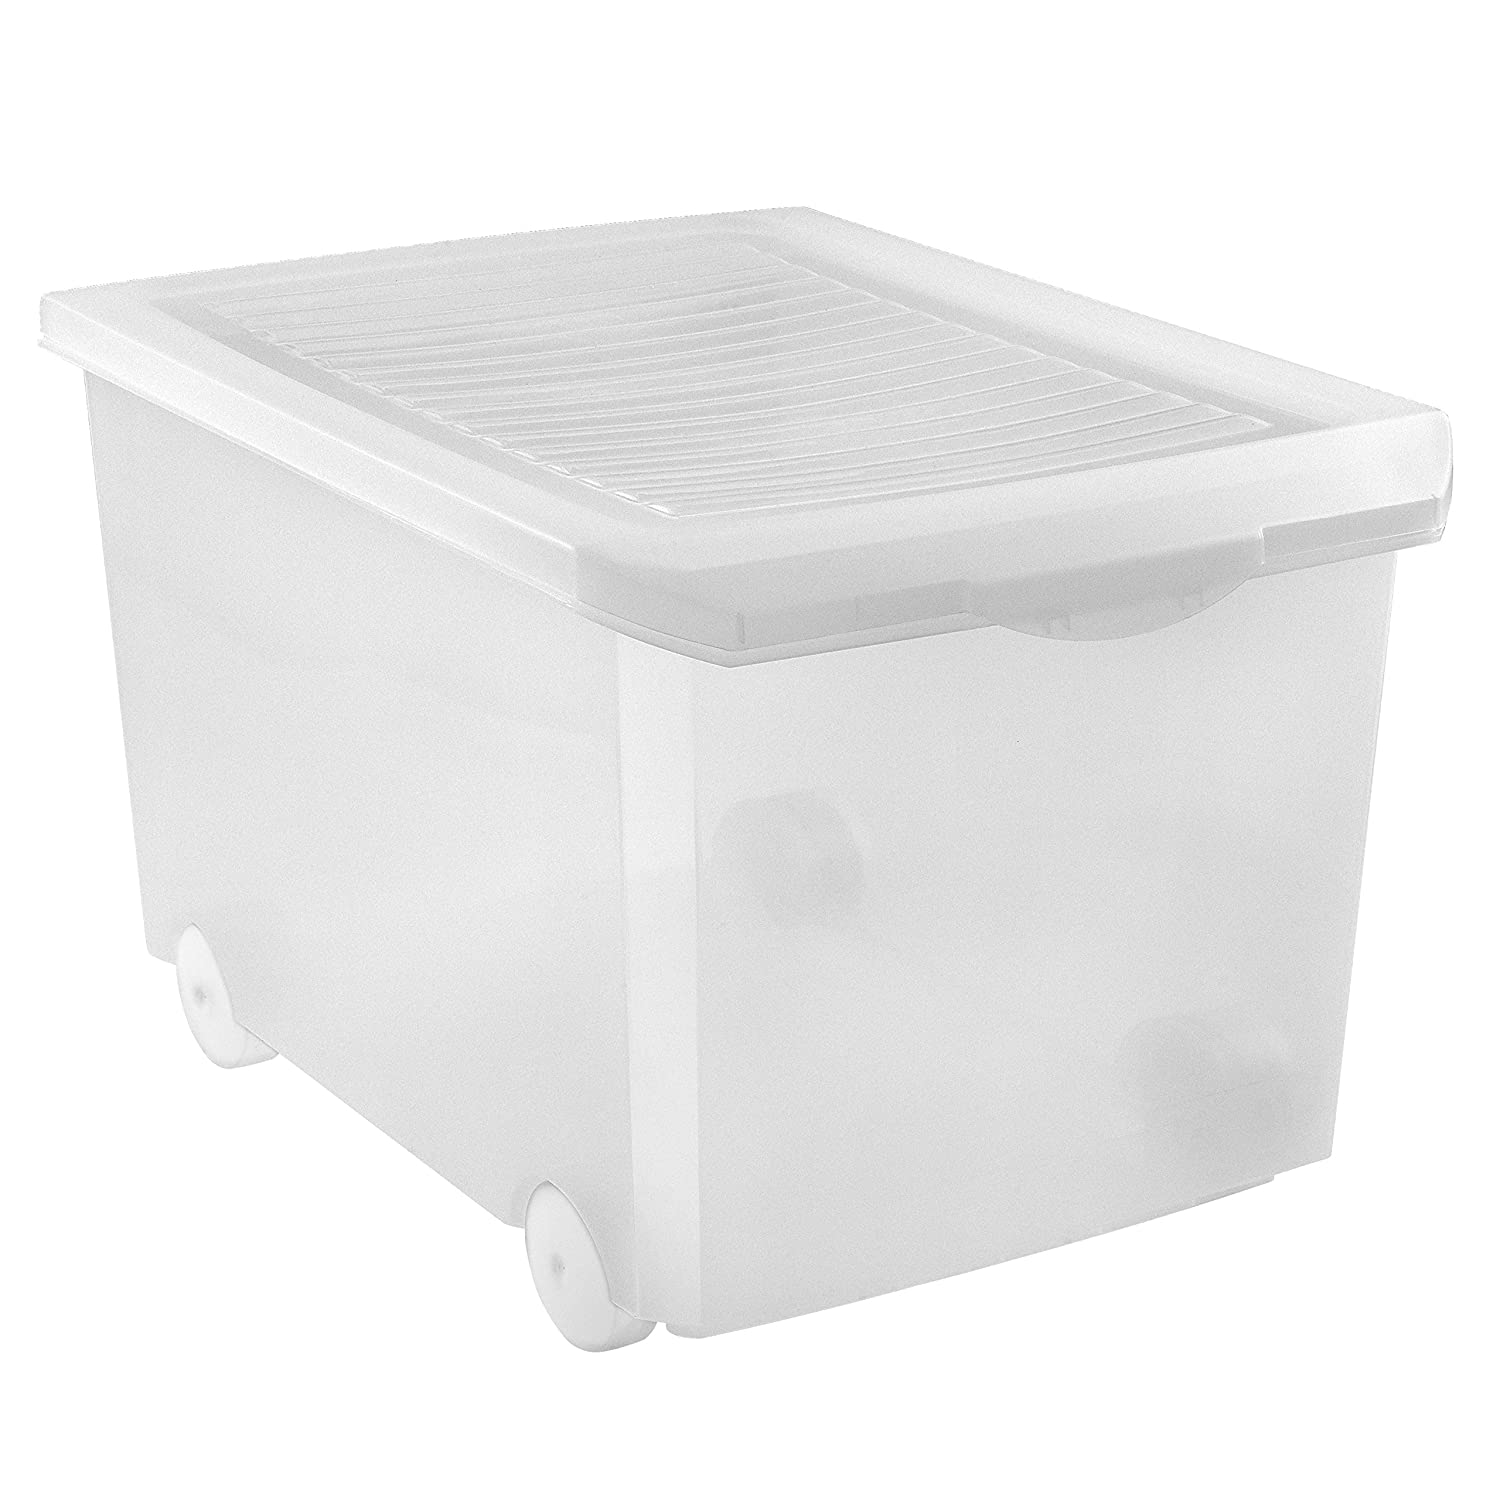 Amazon.com: Tatay Storage Box with Wheels, Transparent, 60 Litre: Kitchen & Dining